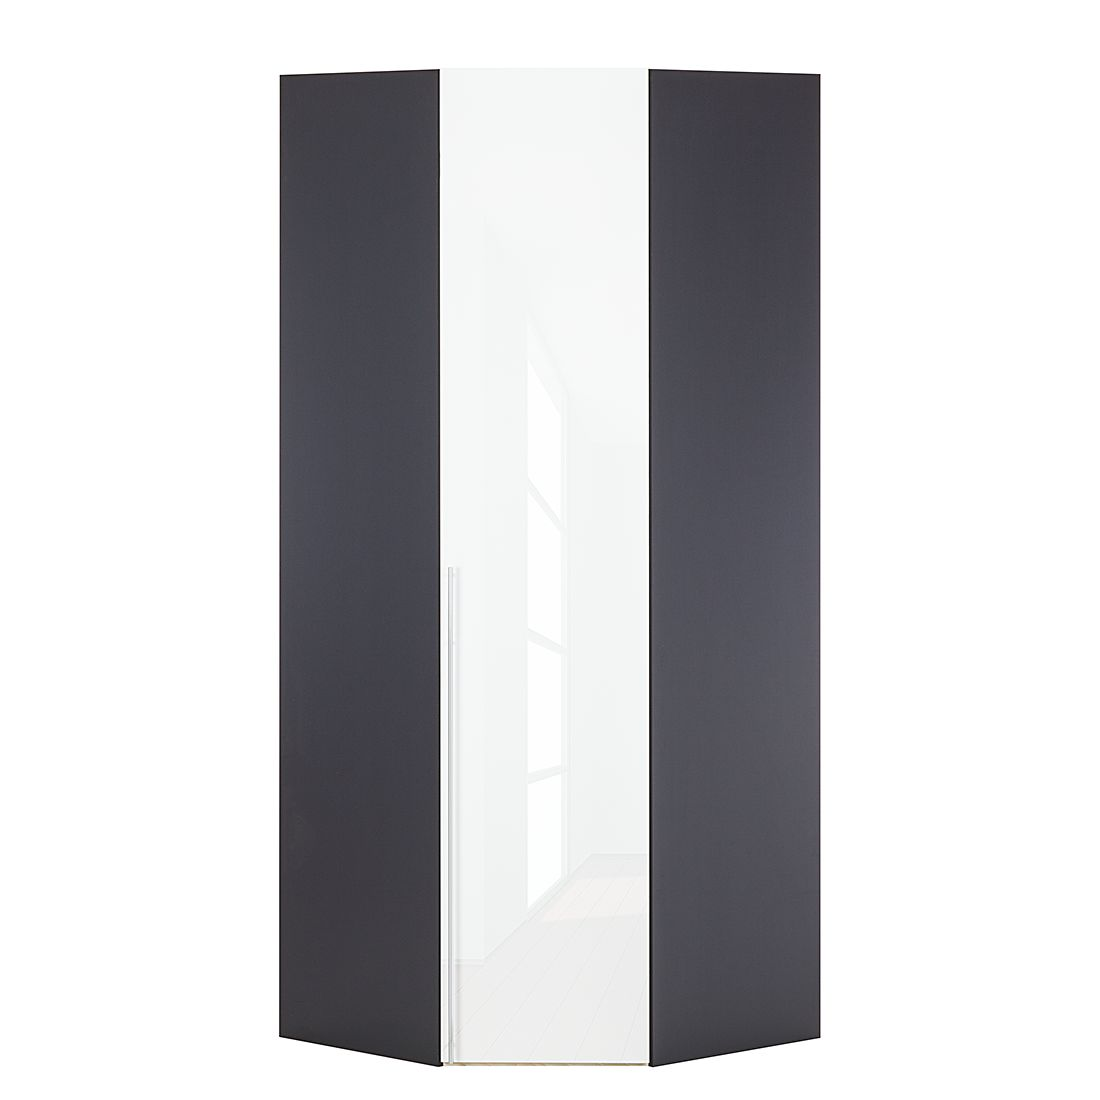 Armoire d'angle Brooklyn VII - Gris graphite / Vernis blanc - 216 cm, Express Möbel